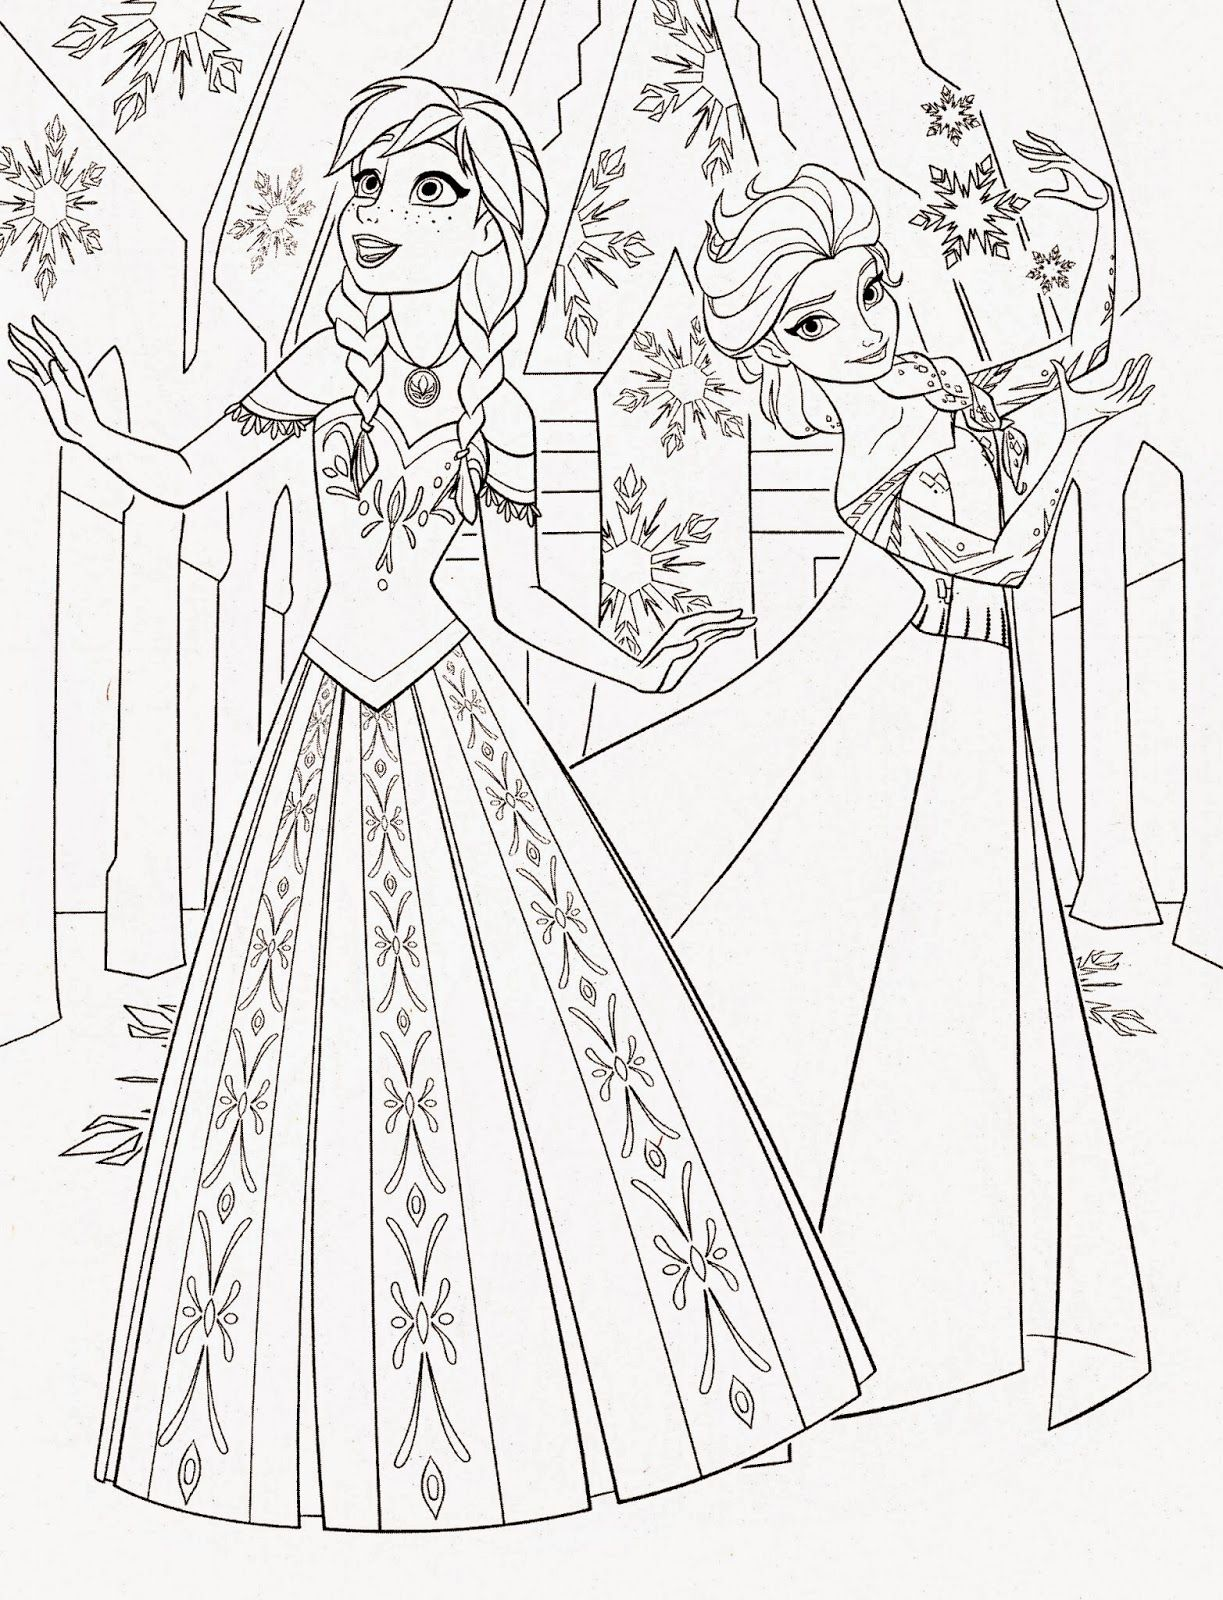 1223x1600 Disney Princess Frozen Elsa And Anna Coloring Pages Recreational